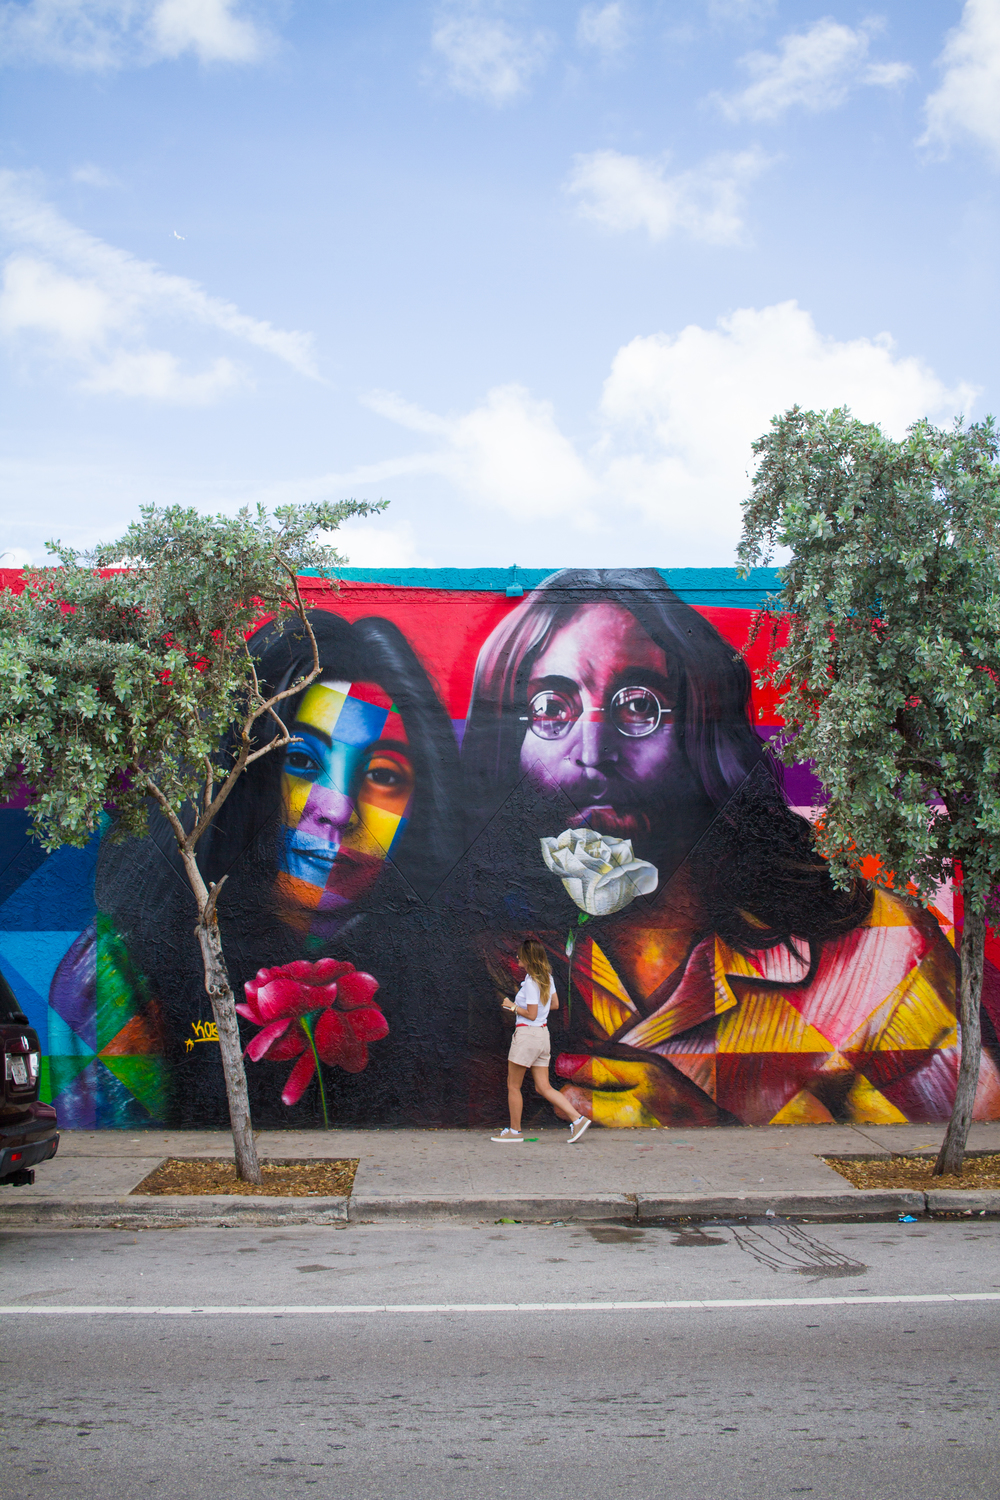 John Lennon and Yoko Ono Art Mural Miami Wynwood